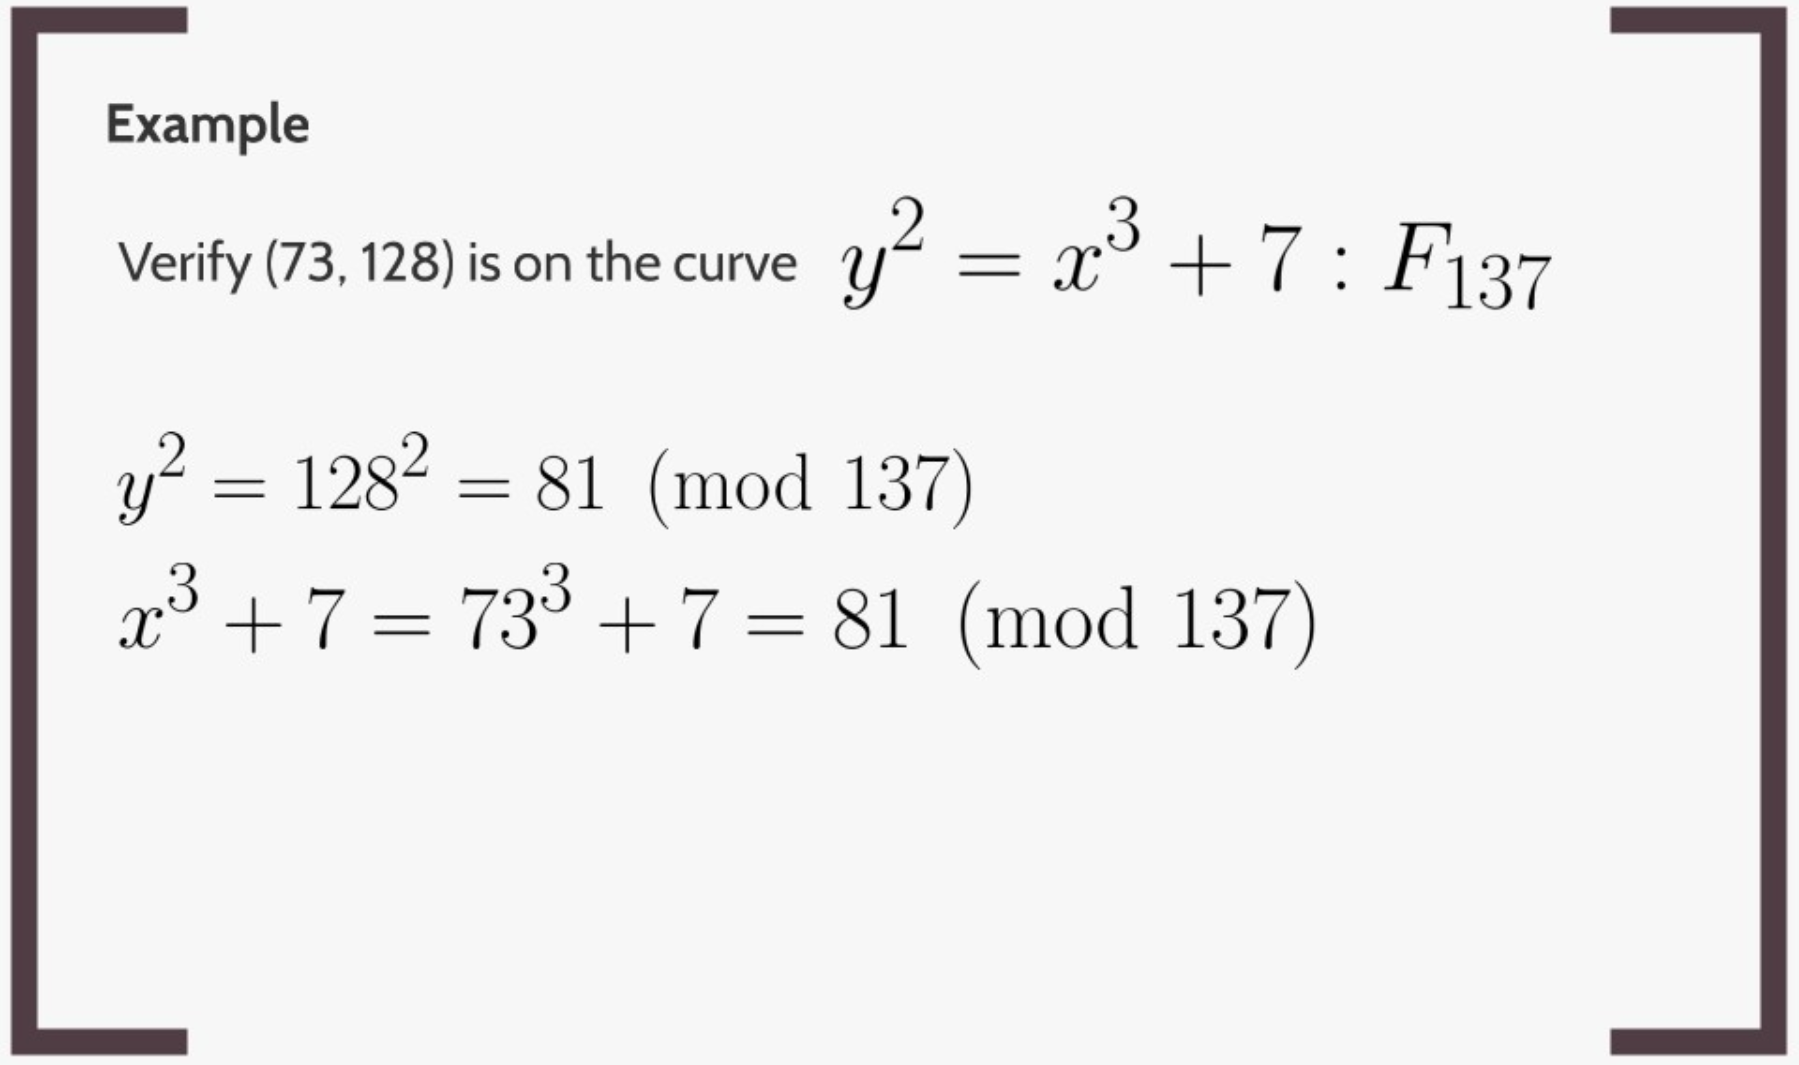 Both sides are equal, so (73, 128) is on the curve.